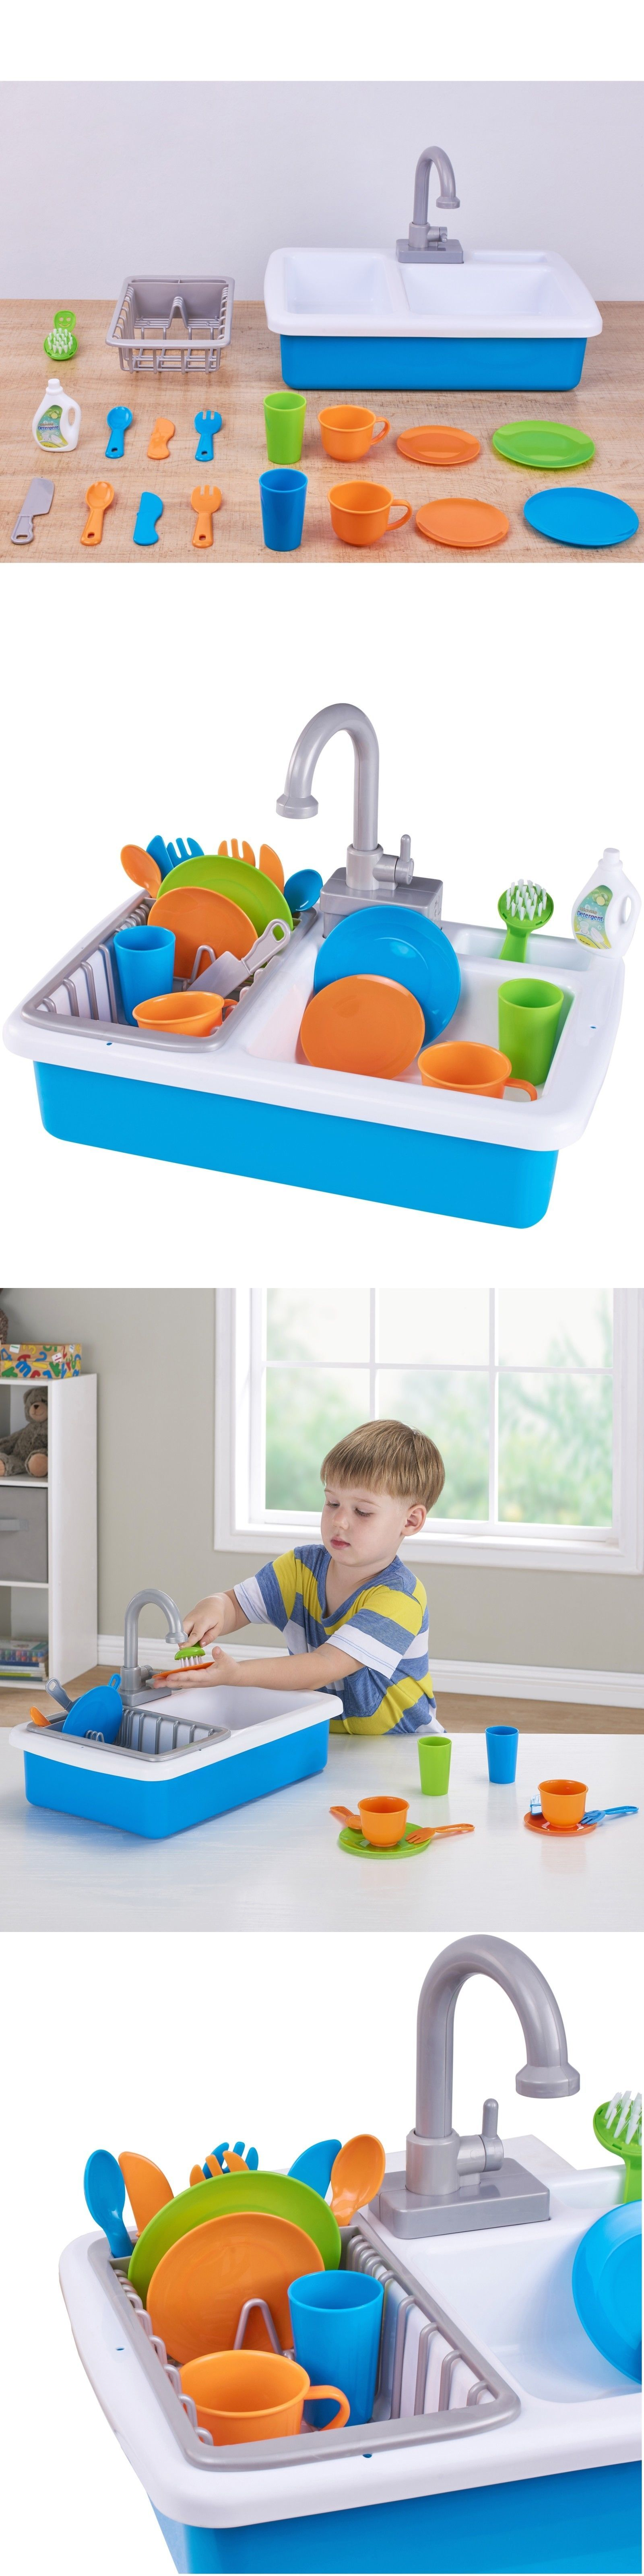 Kitchens 158746 Kitchen Sink Play Set Toy Plastic Designed For Kids Children Toddler Buy It Now Only 29 1 On Kids Play Toys Kids Playing Plastic Design